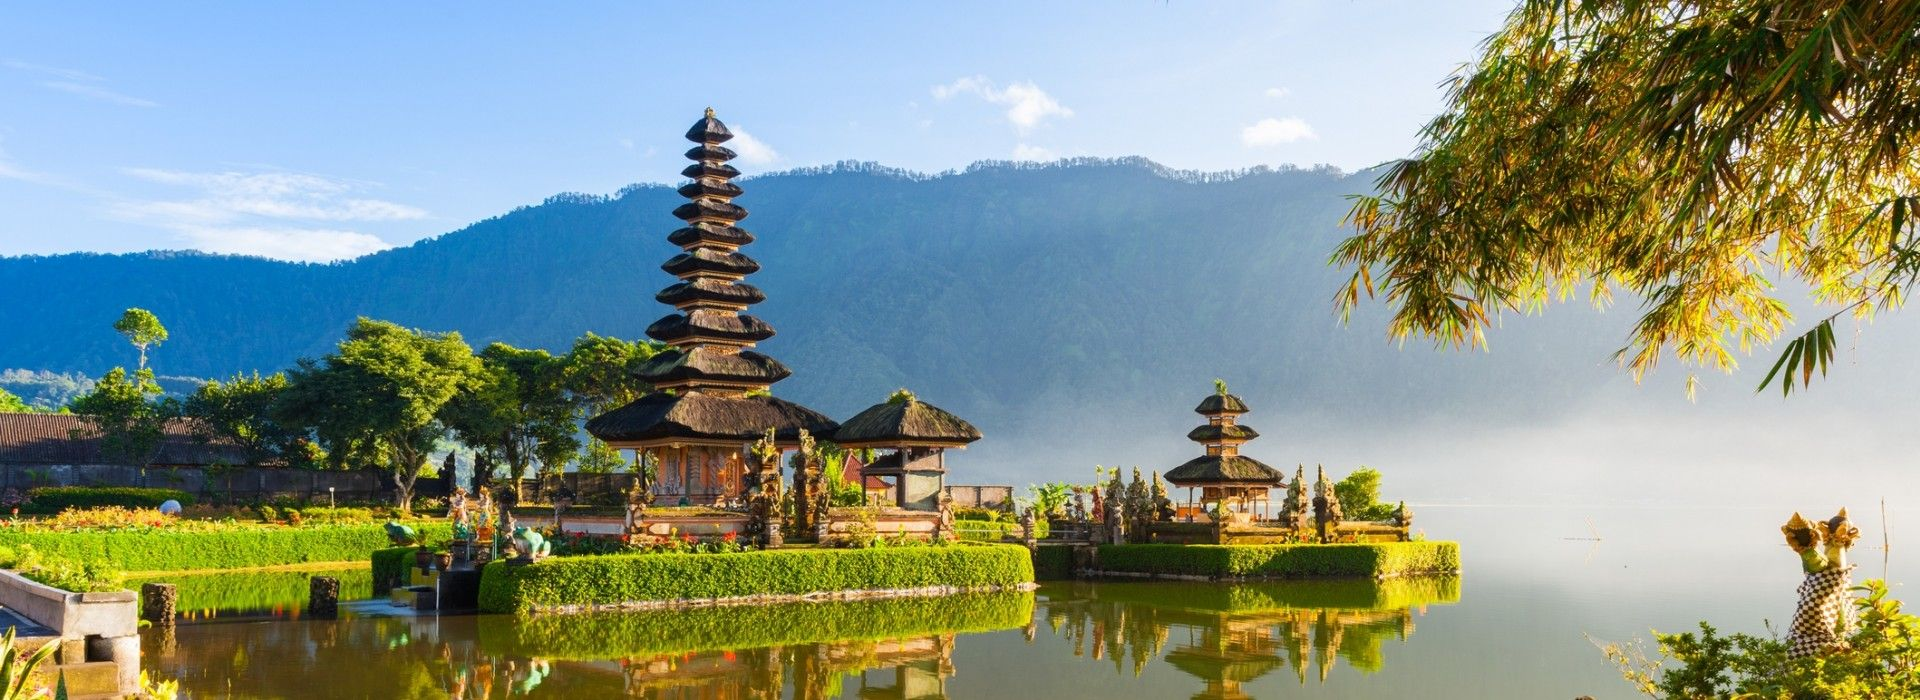 Sightseeing, attractions, culture and history Tours in Denpasar